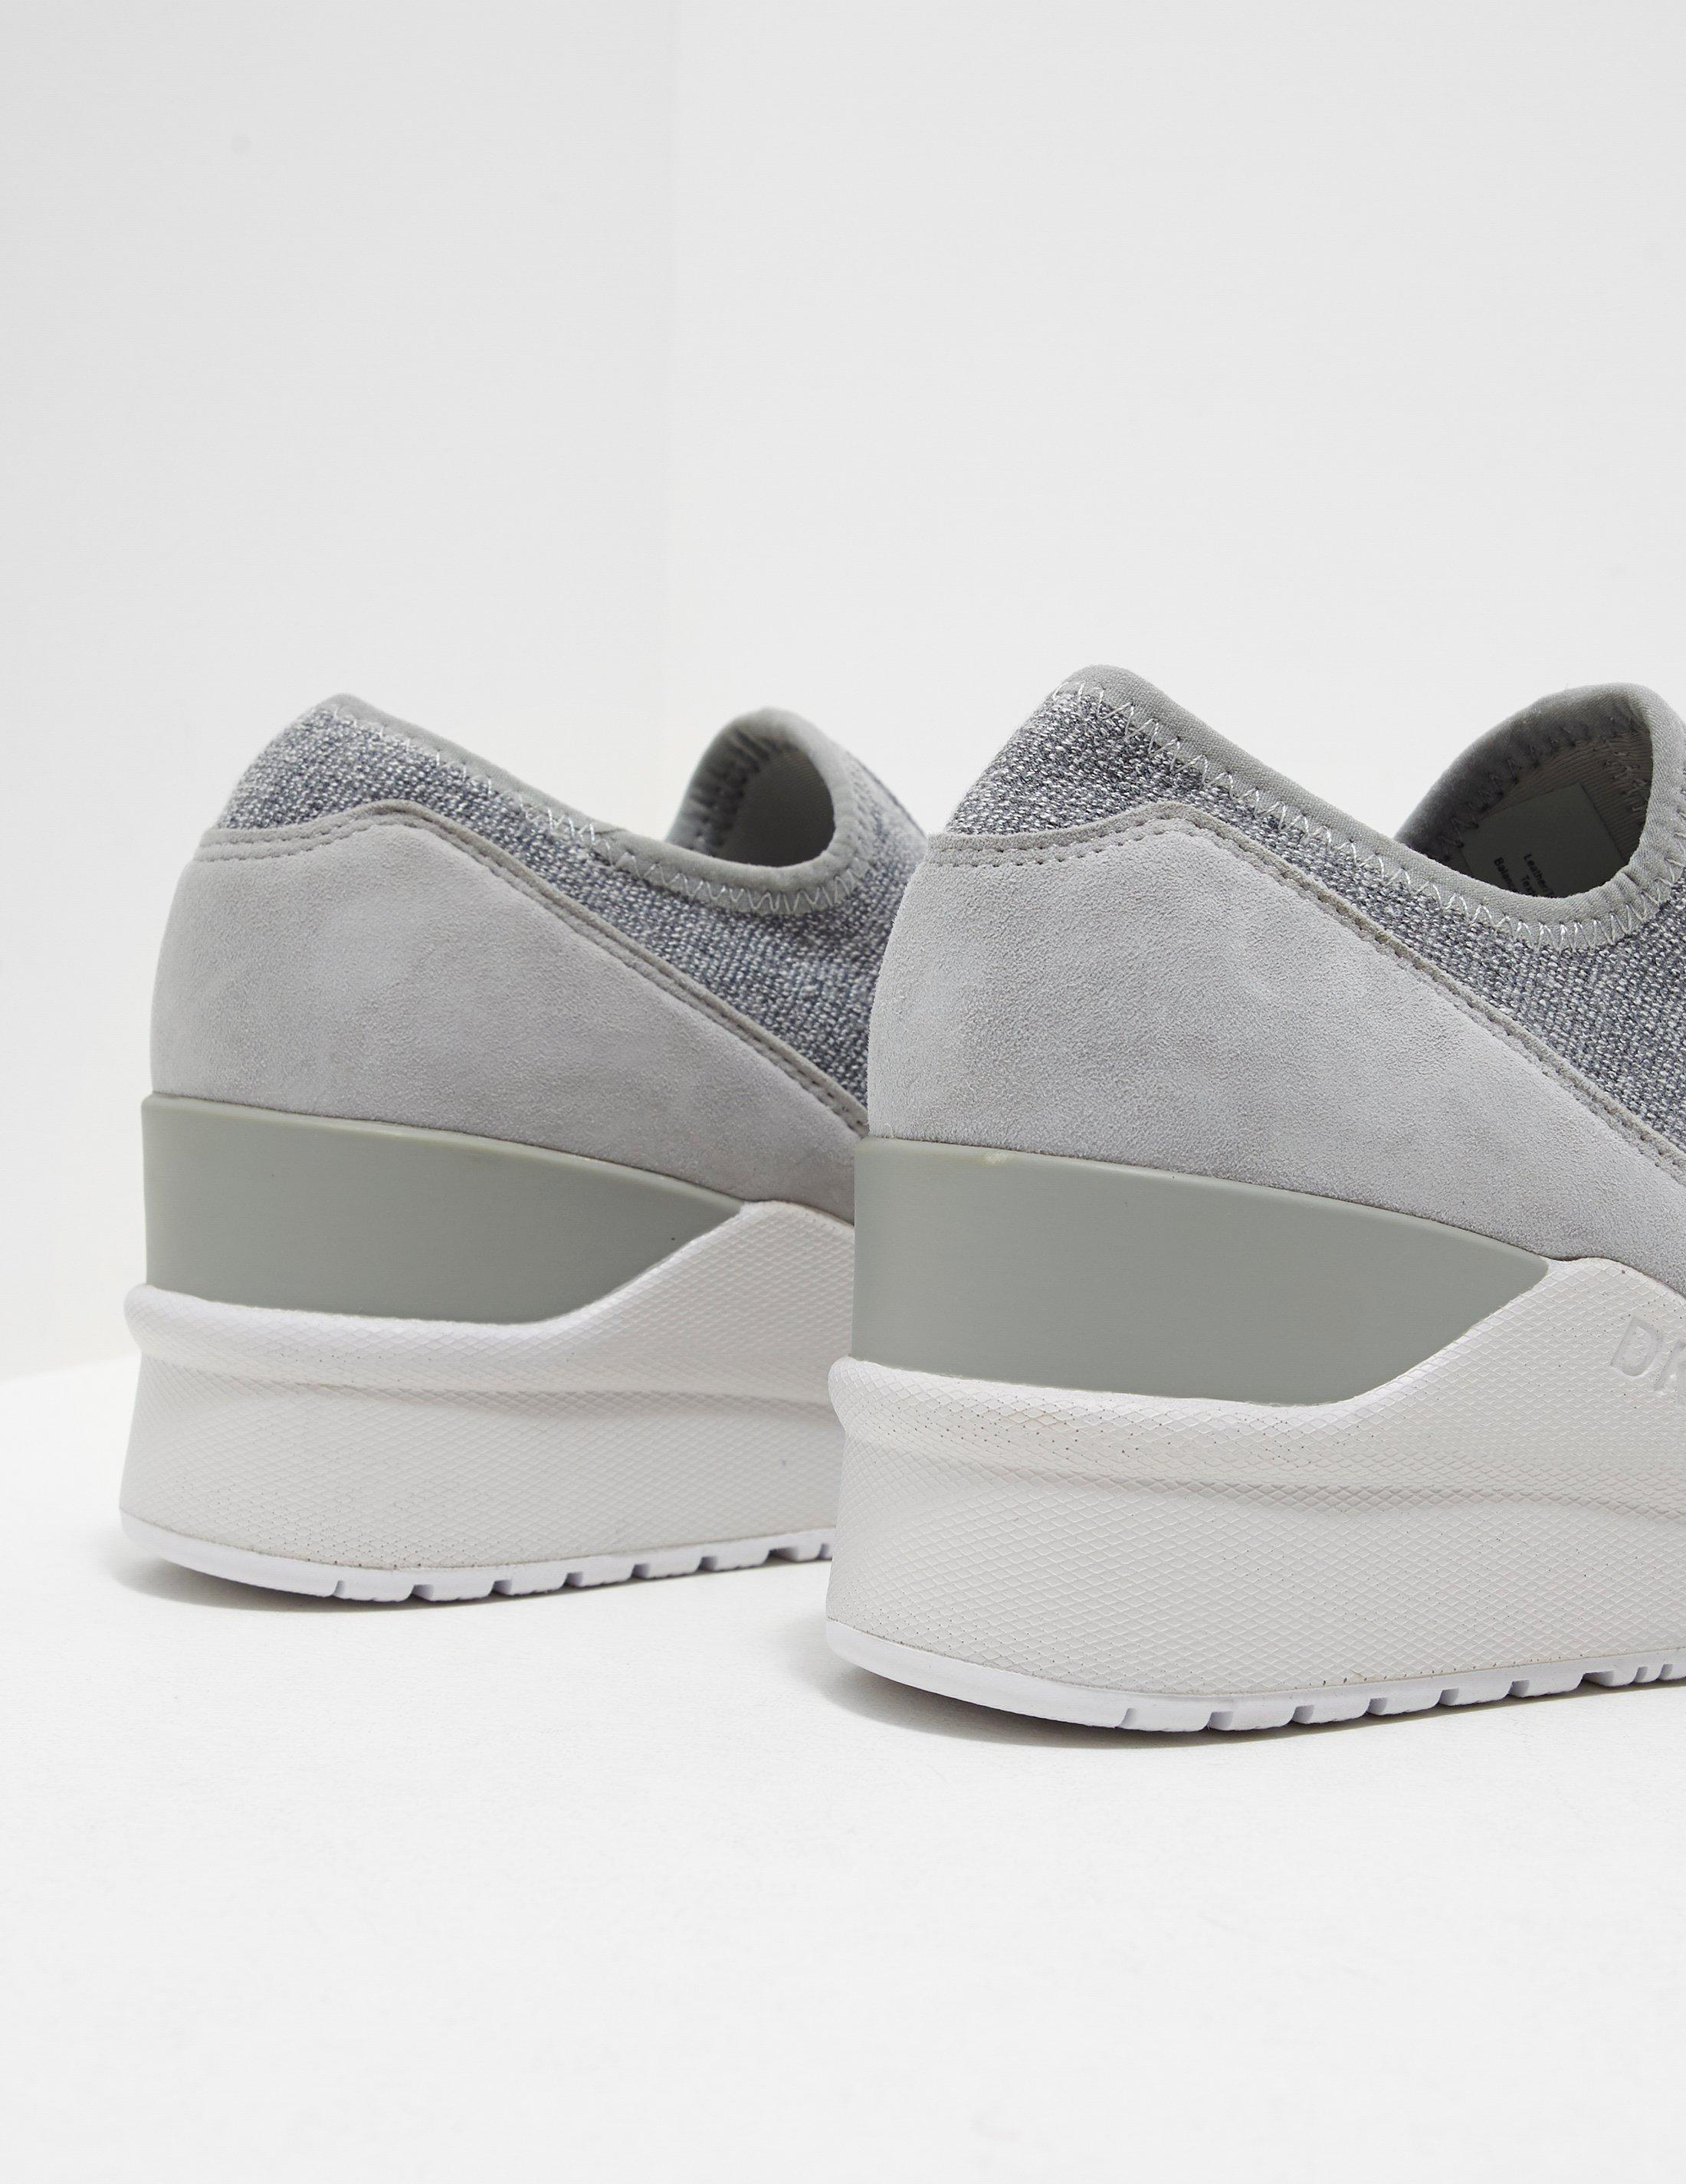 DKNY Suede Leigh Wedge Trainer Grey in